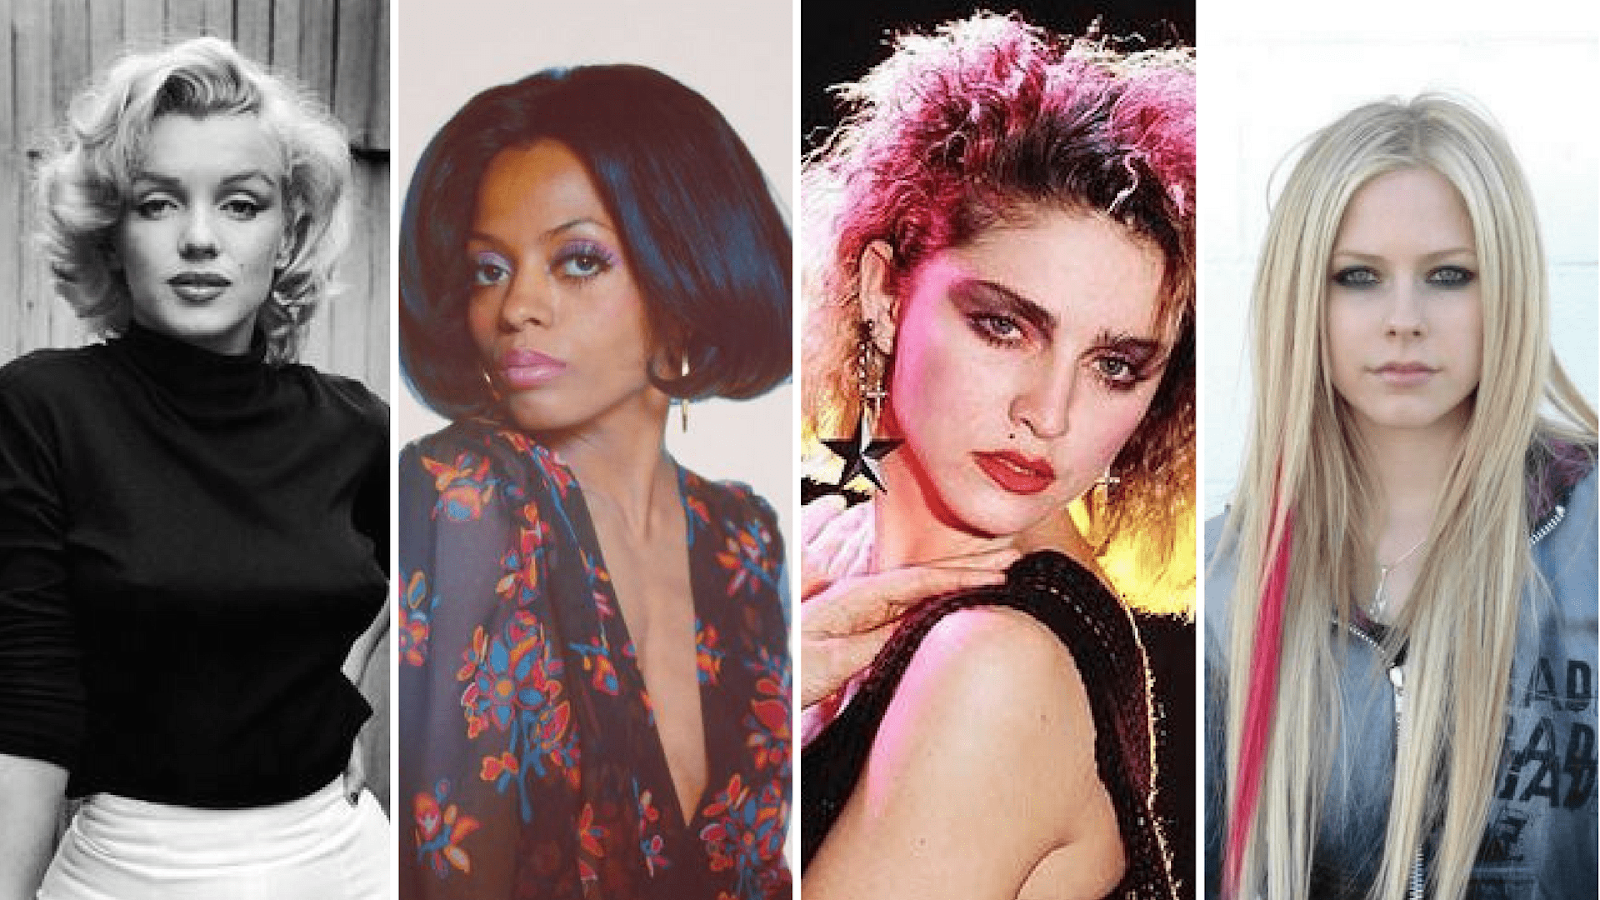 Four women showing four different beauty looks throughout the years